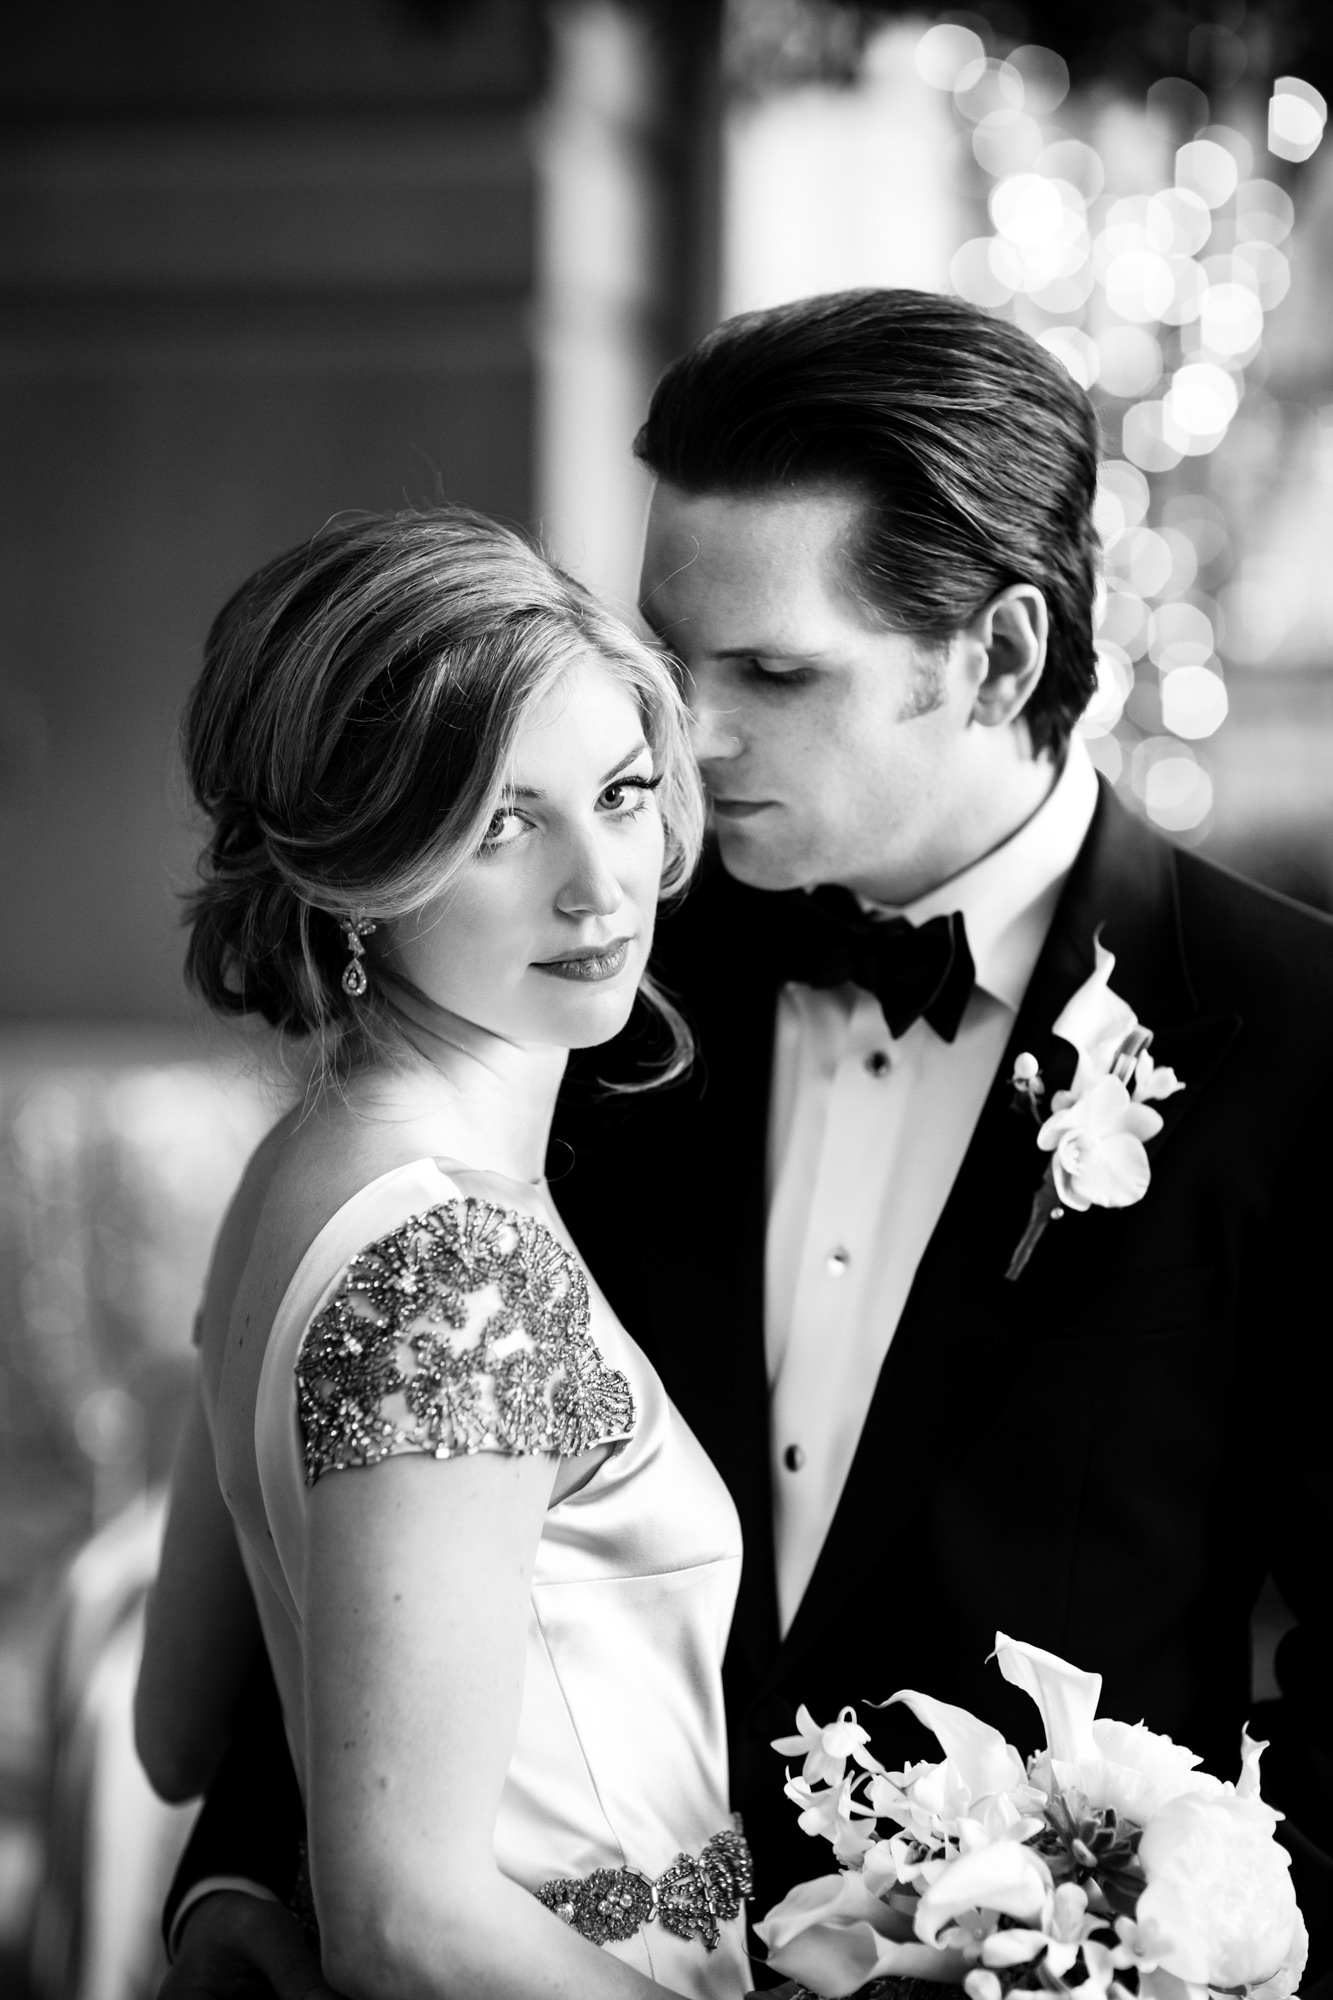 Elegant portrait of couple at reception  - La Vie Photography